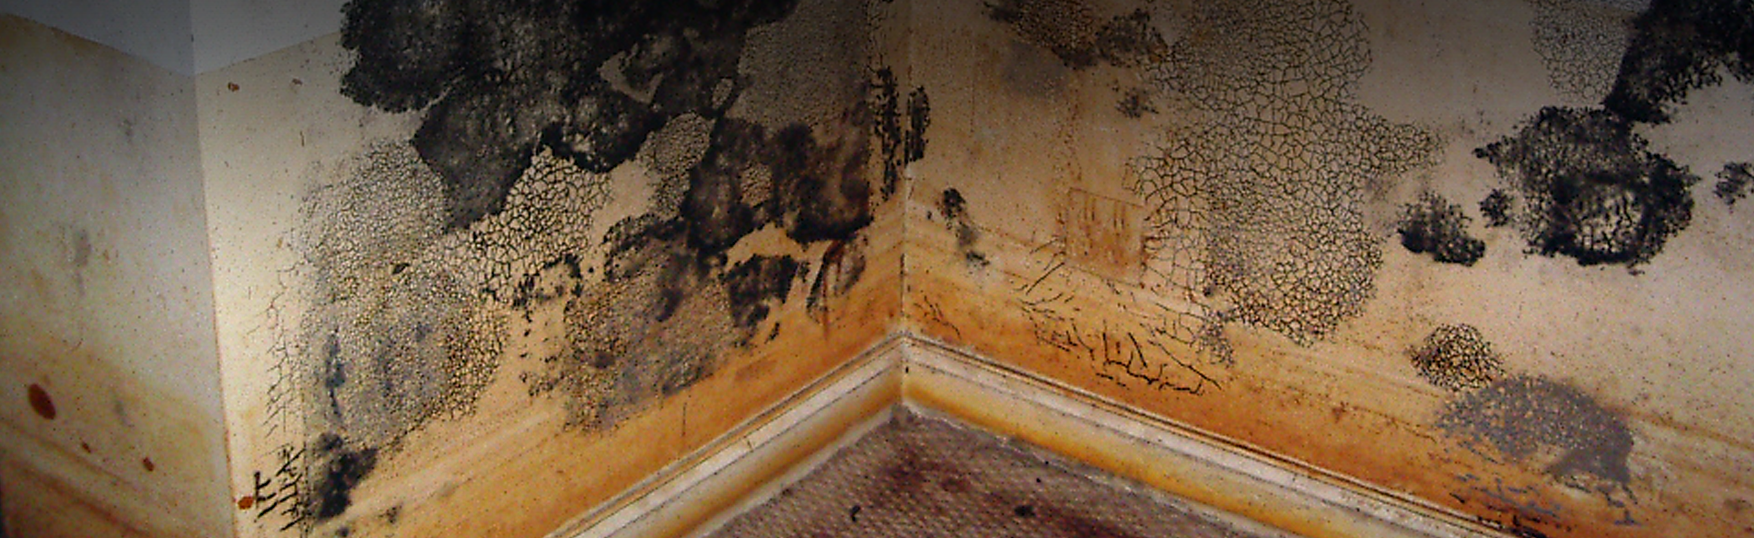 Mold - Florida Home Inspections provided by US Inspect - Serving Cental Florida